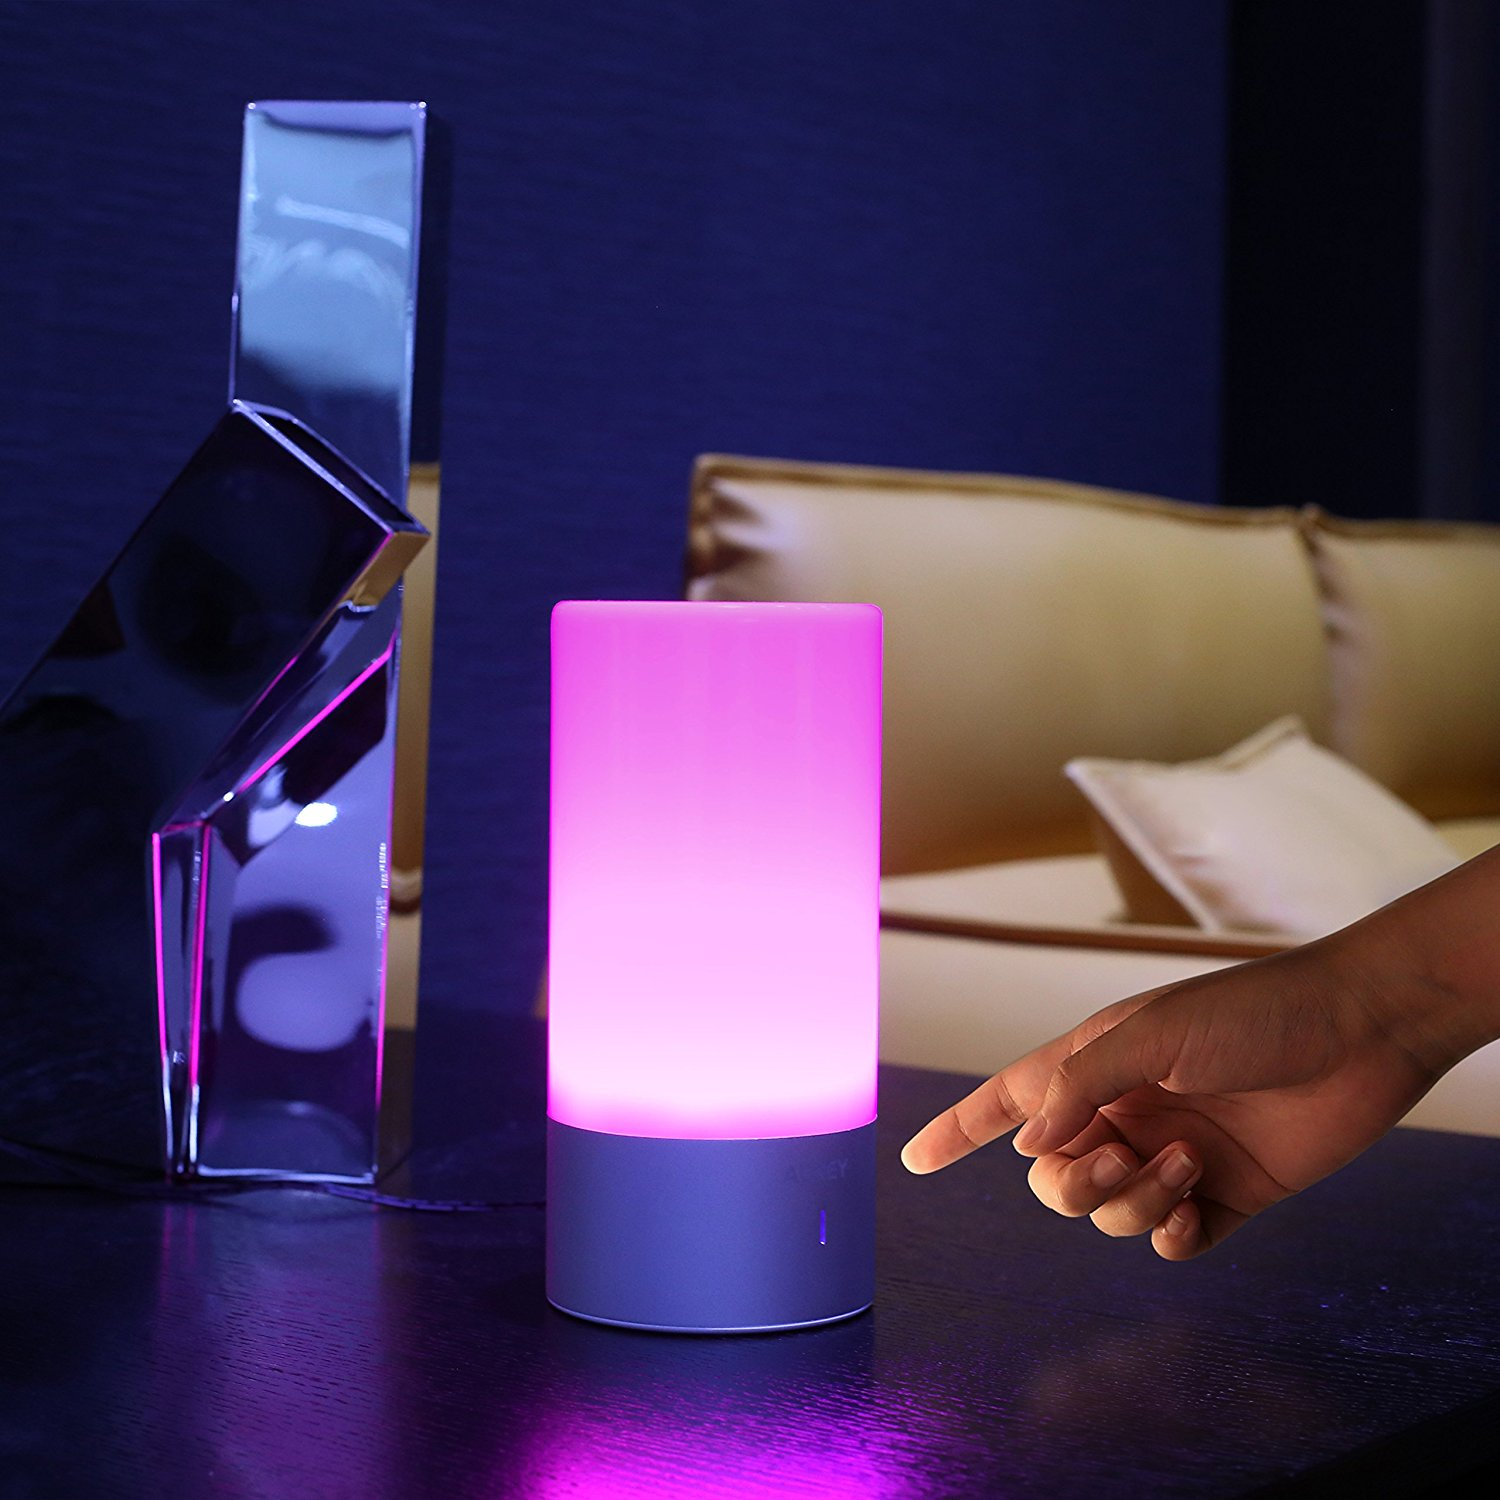 AUKEY Bedside Lamp, Touch Sensor Table Lamp UK